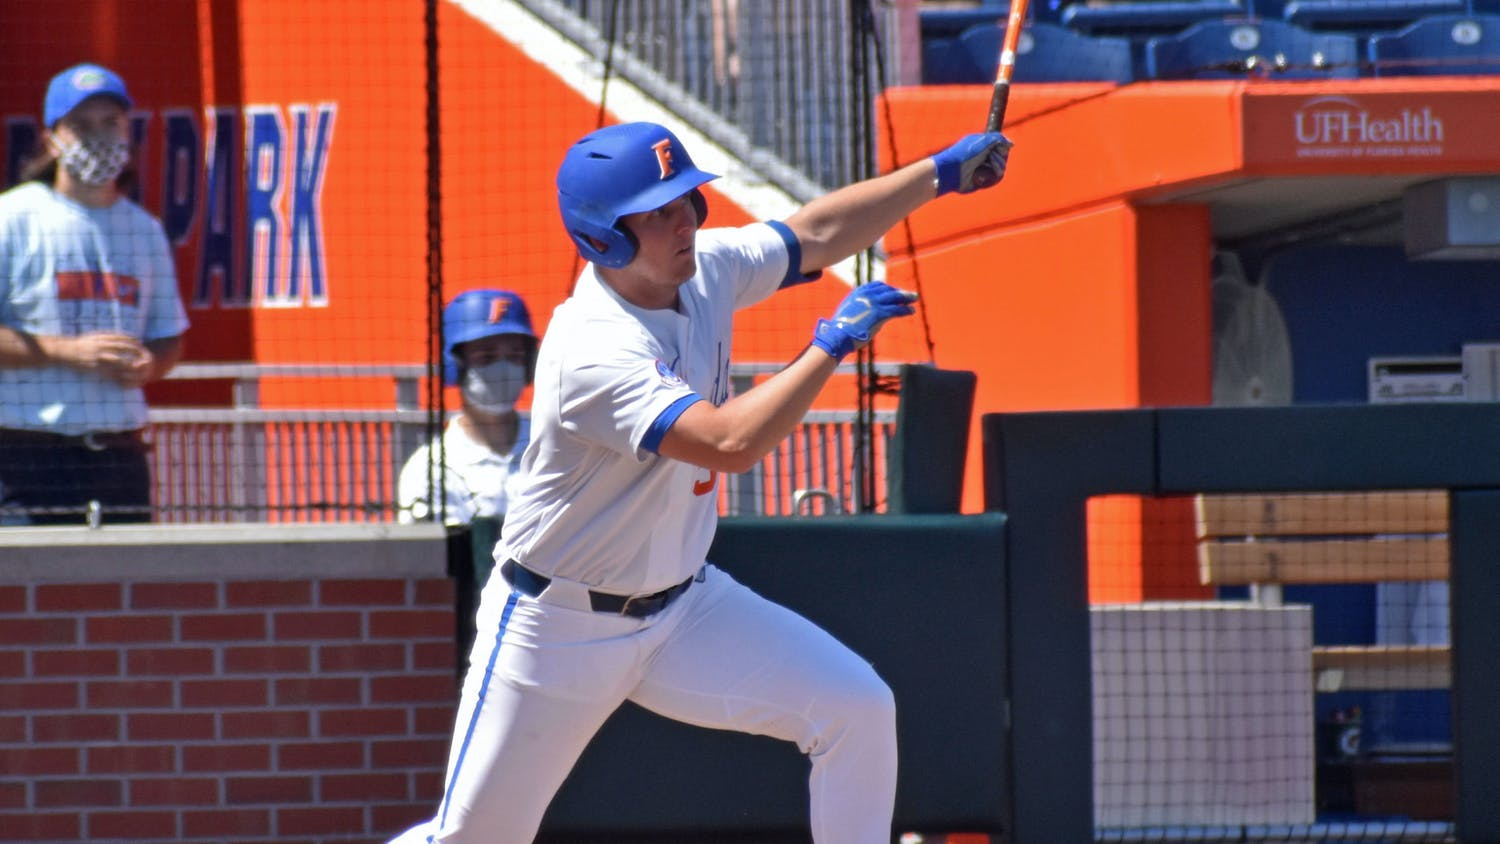 Third baseman Kirby McMullen hits a ball against Jacksonville March 14. McMullen tallied two of Florida's three hits and scored the Gators only run in a 6-1 loss to Stetson on Tuesday.